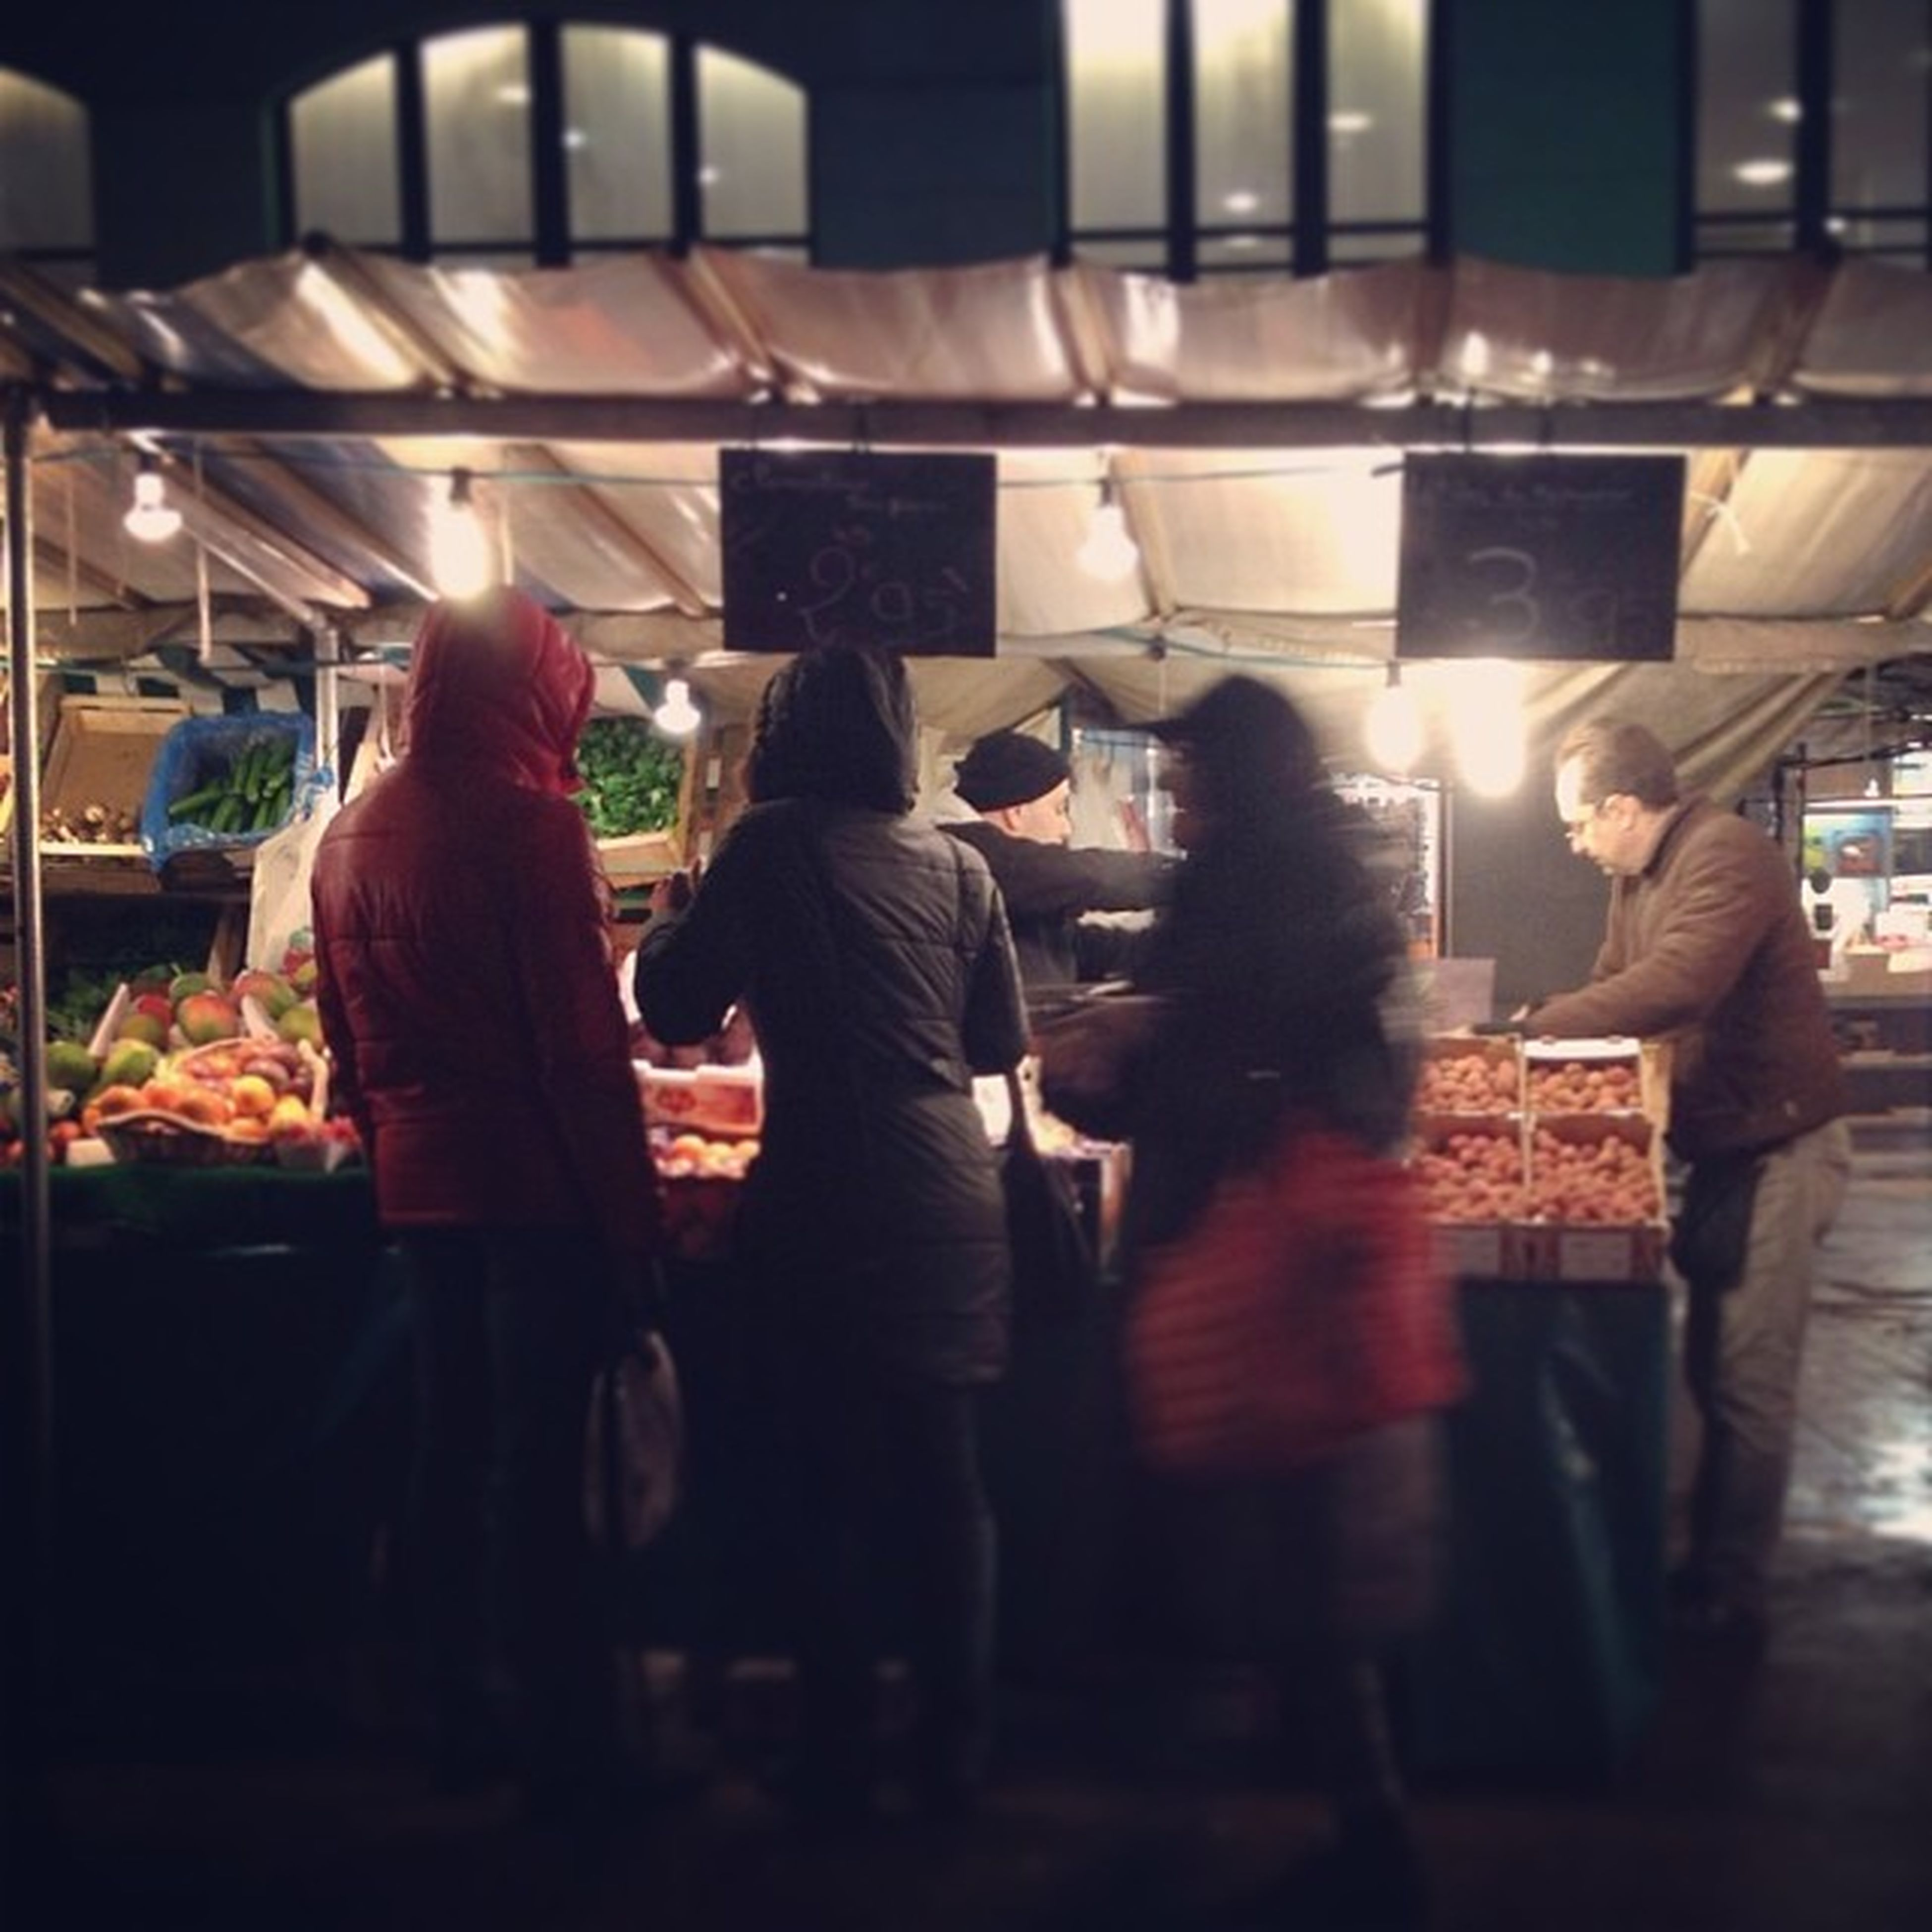 indoors, men, lifestyles, person, retail, standing, market, for sale, food and drink, market stall, choice, illuminated, leisure activity, large group of people, restaurant, medium group of people, business, rear view, store